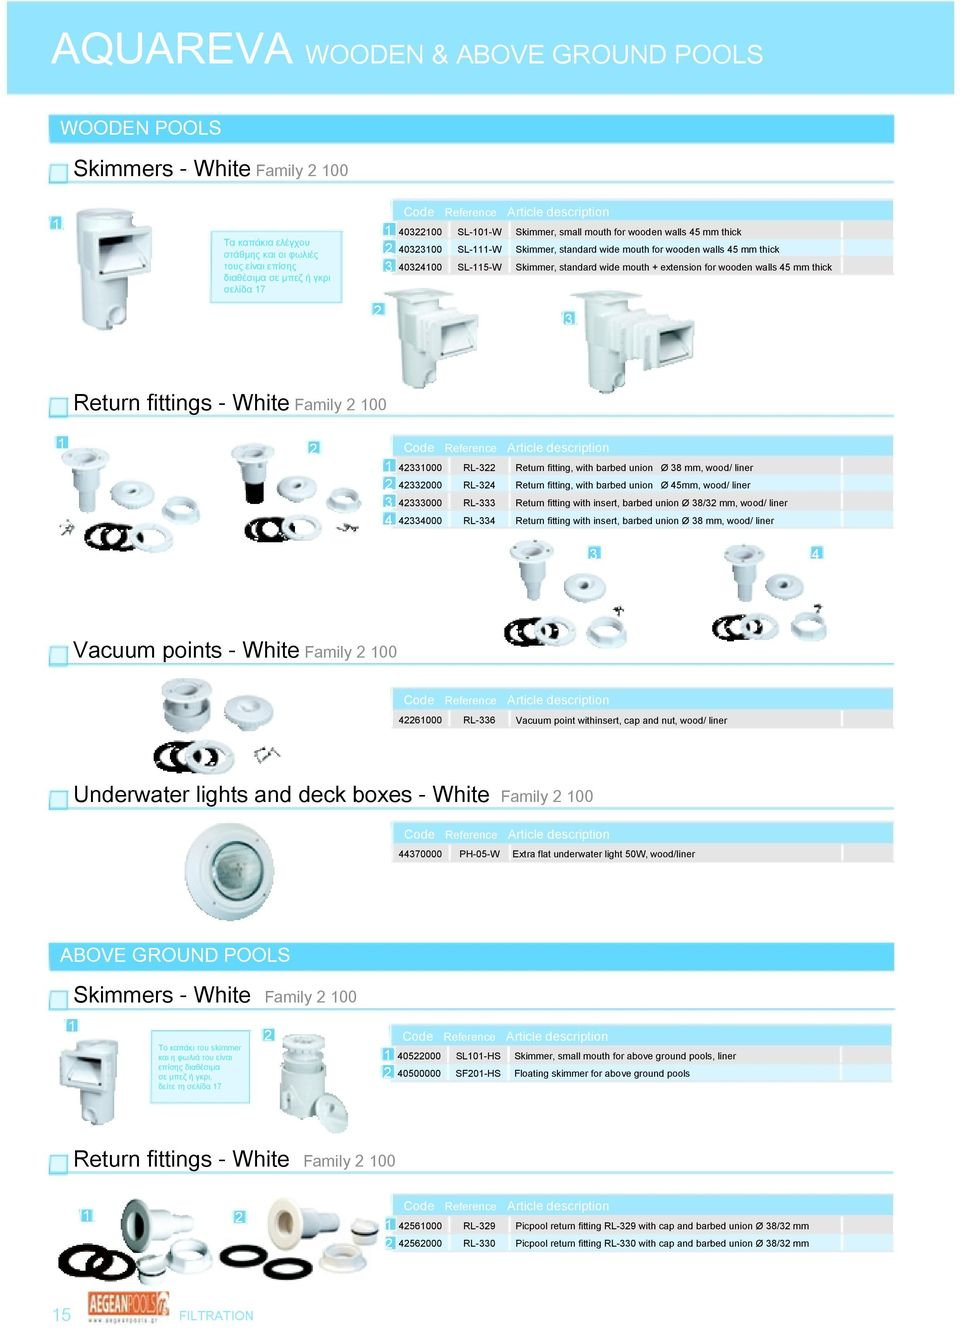 thick 3 Return fittings - White 1 2 1 42331000 RL-322 Return fitting, with barbed union Ø 38 mm, wood/ liner 2 42332000 RL-324 Return fitting, with barbed union Ø 45mm, wood/ liner 3 42333000 RL-333